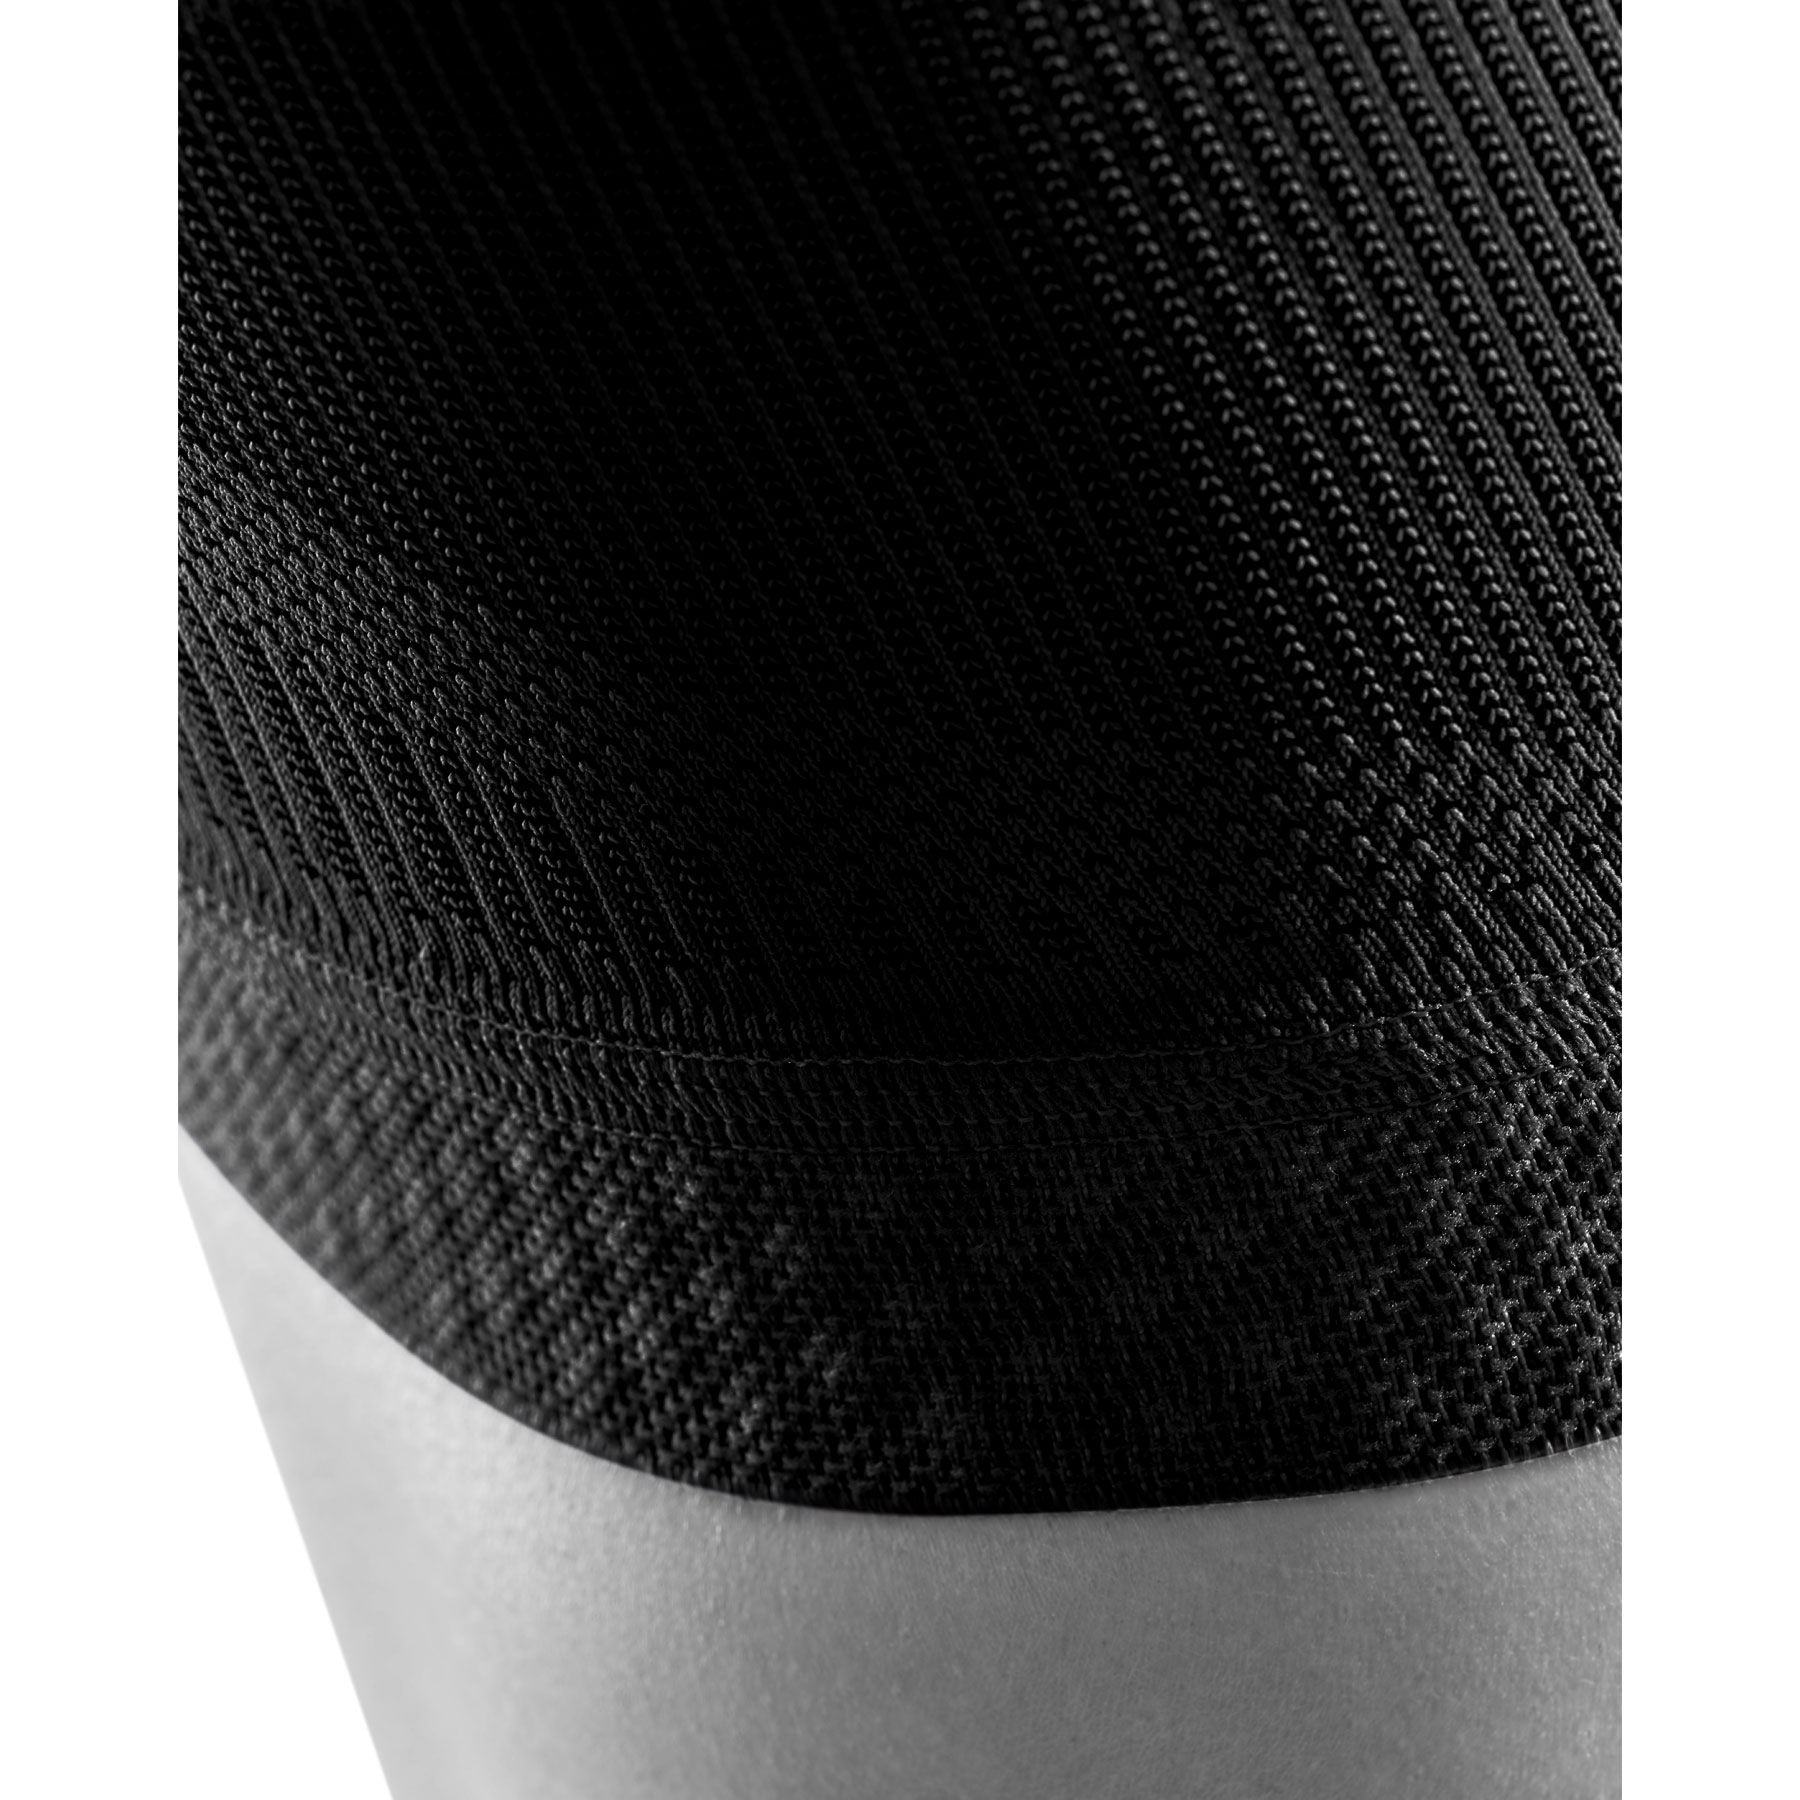 Image of Bauerfeind Sports Compression Knee Support - black